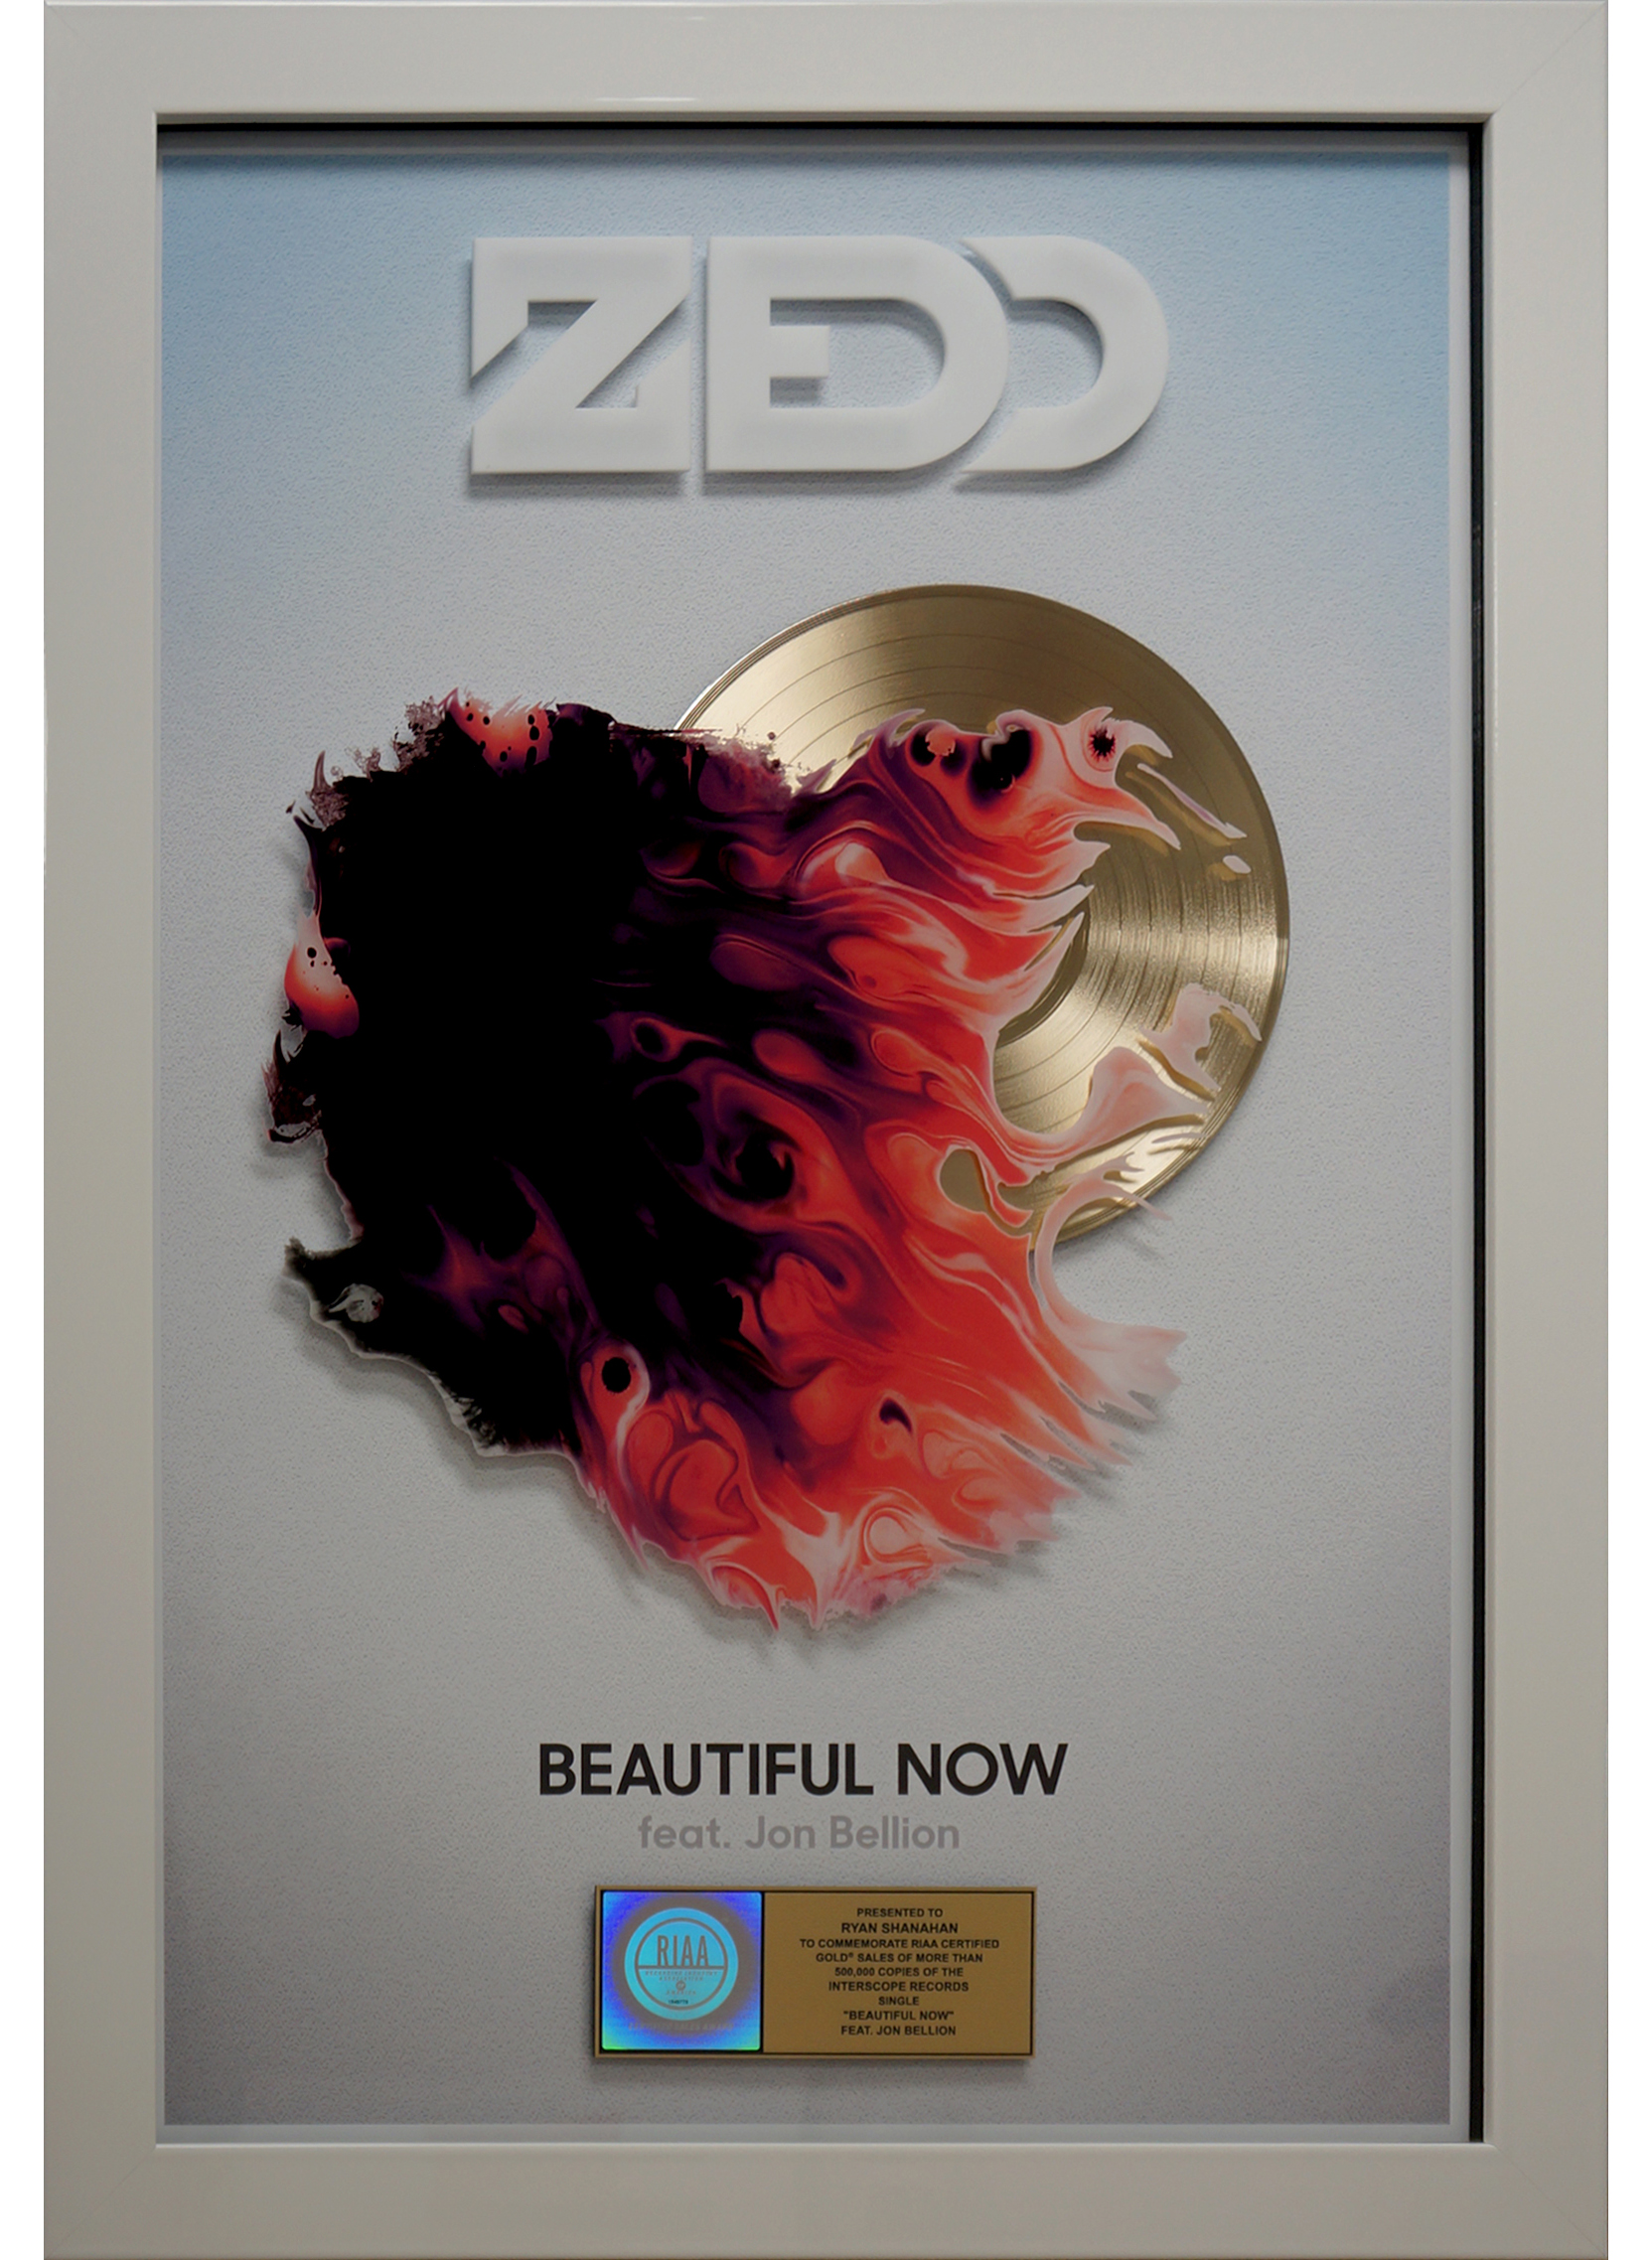 ZEDD feat Jon Bellion Beautiful Now award photo (005).jpg